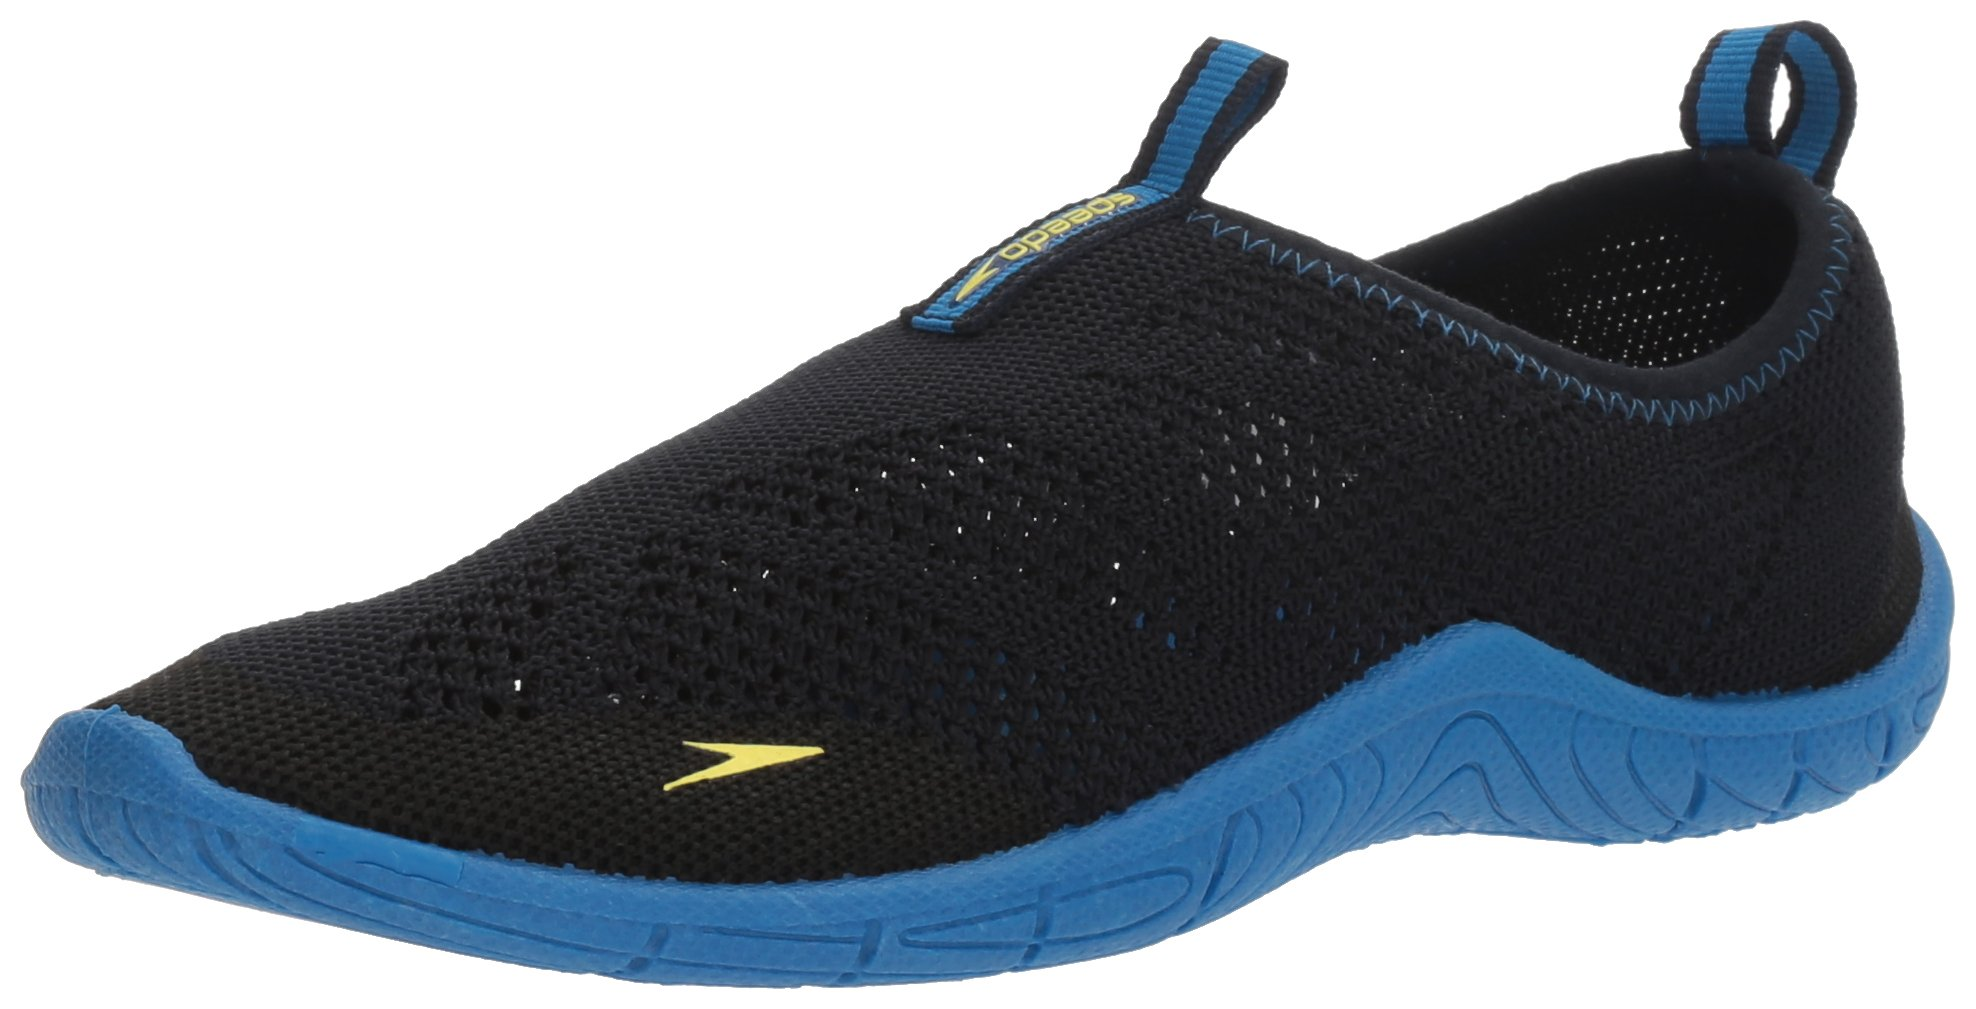 Speedo Women's Surf Knit Athletic Water Shoe, Navy/Blue, 7 C/D US